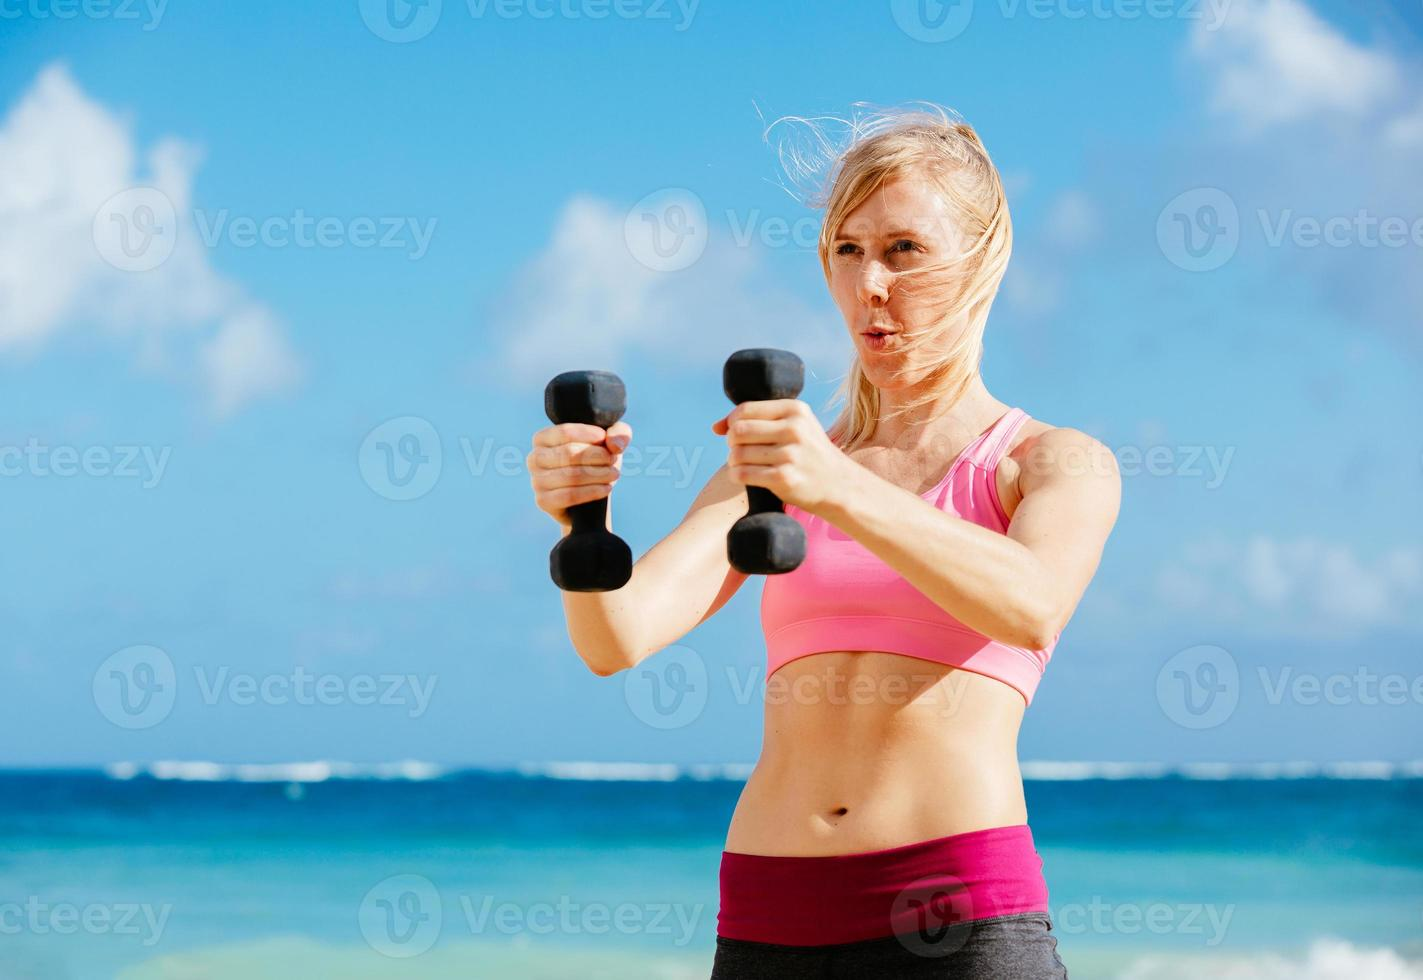 Fitness woman with barbells working out photo